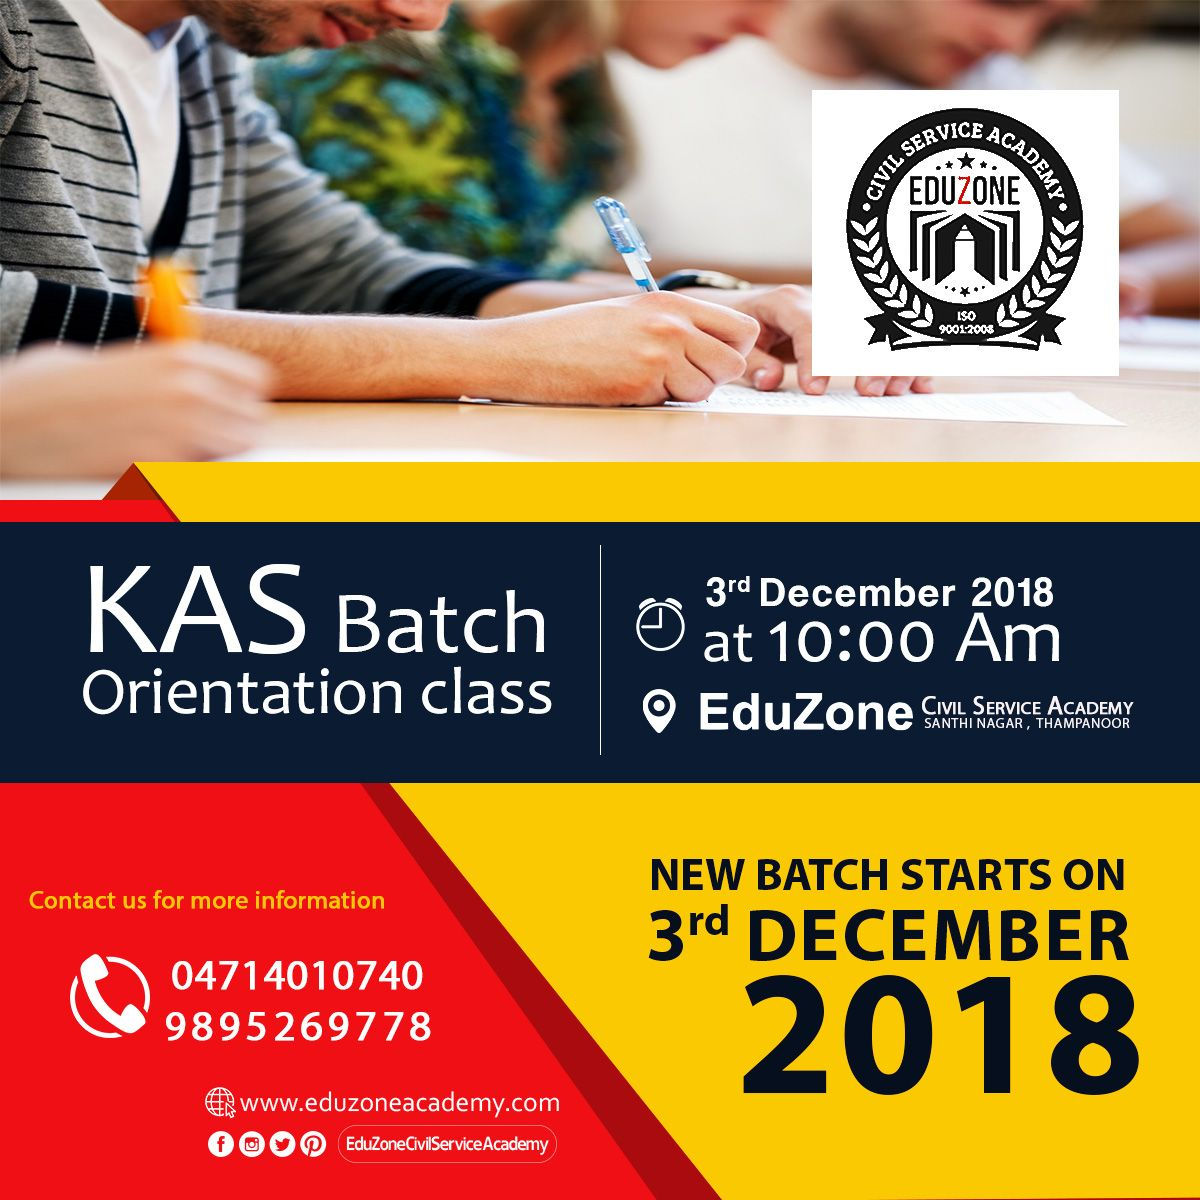 KAS Batch Orientation class on 3rd December 2018 for more